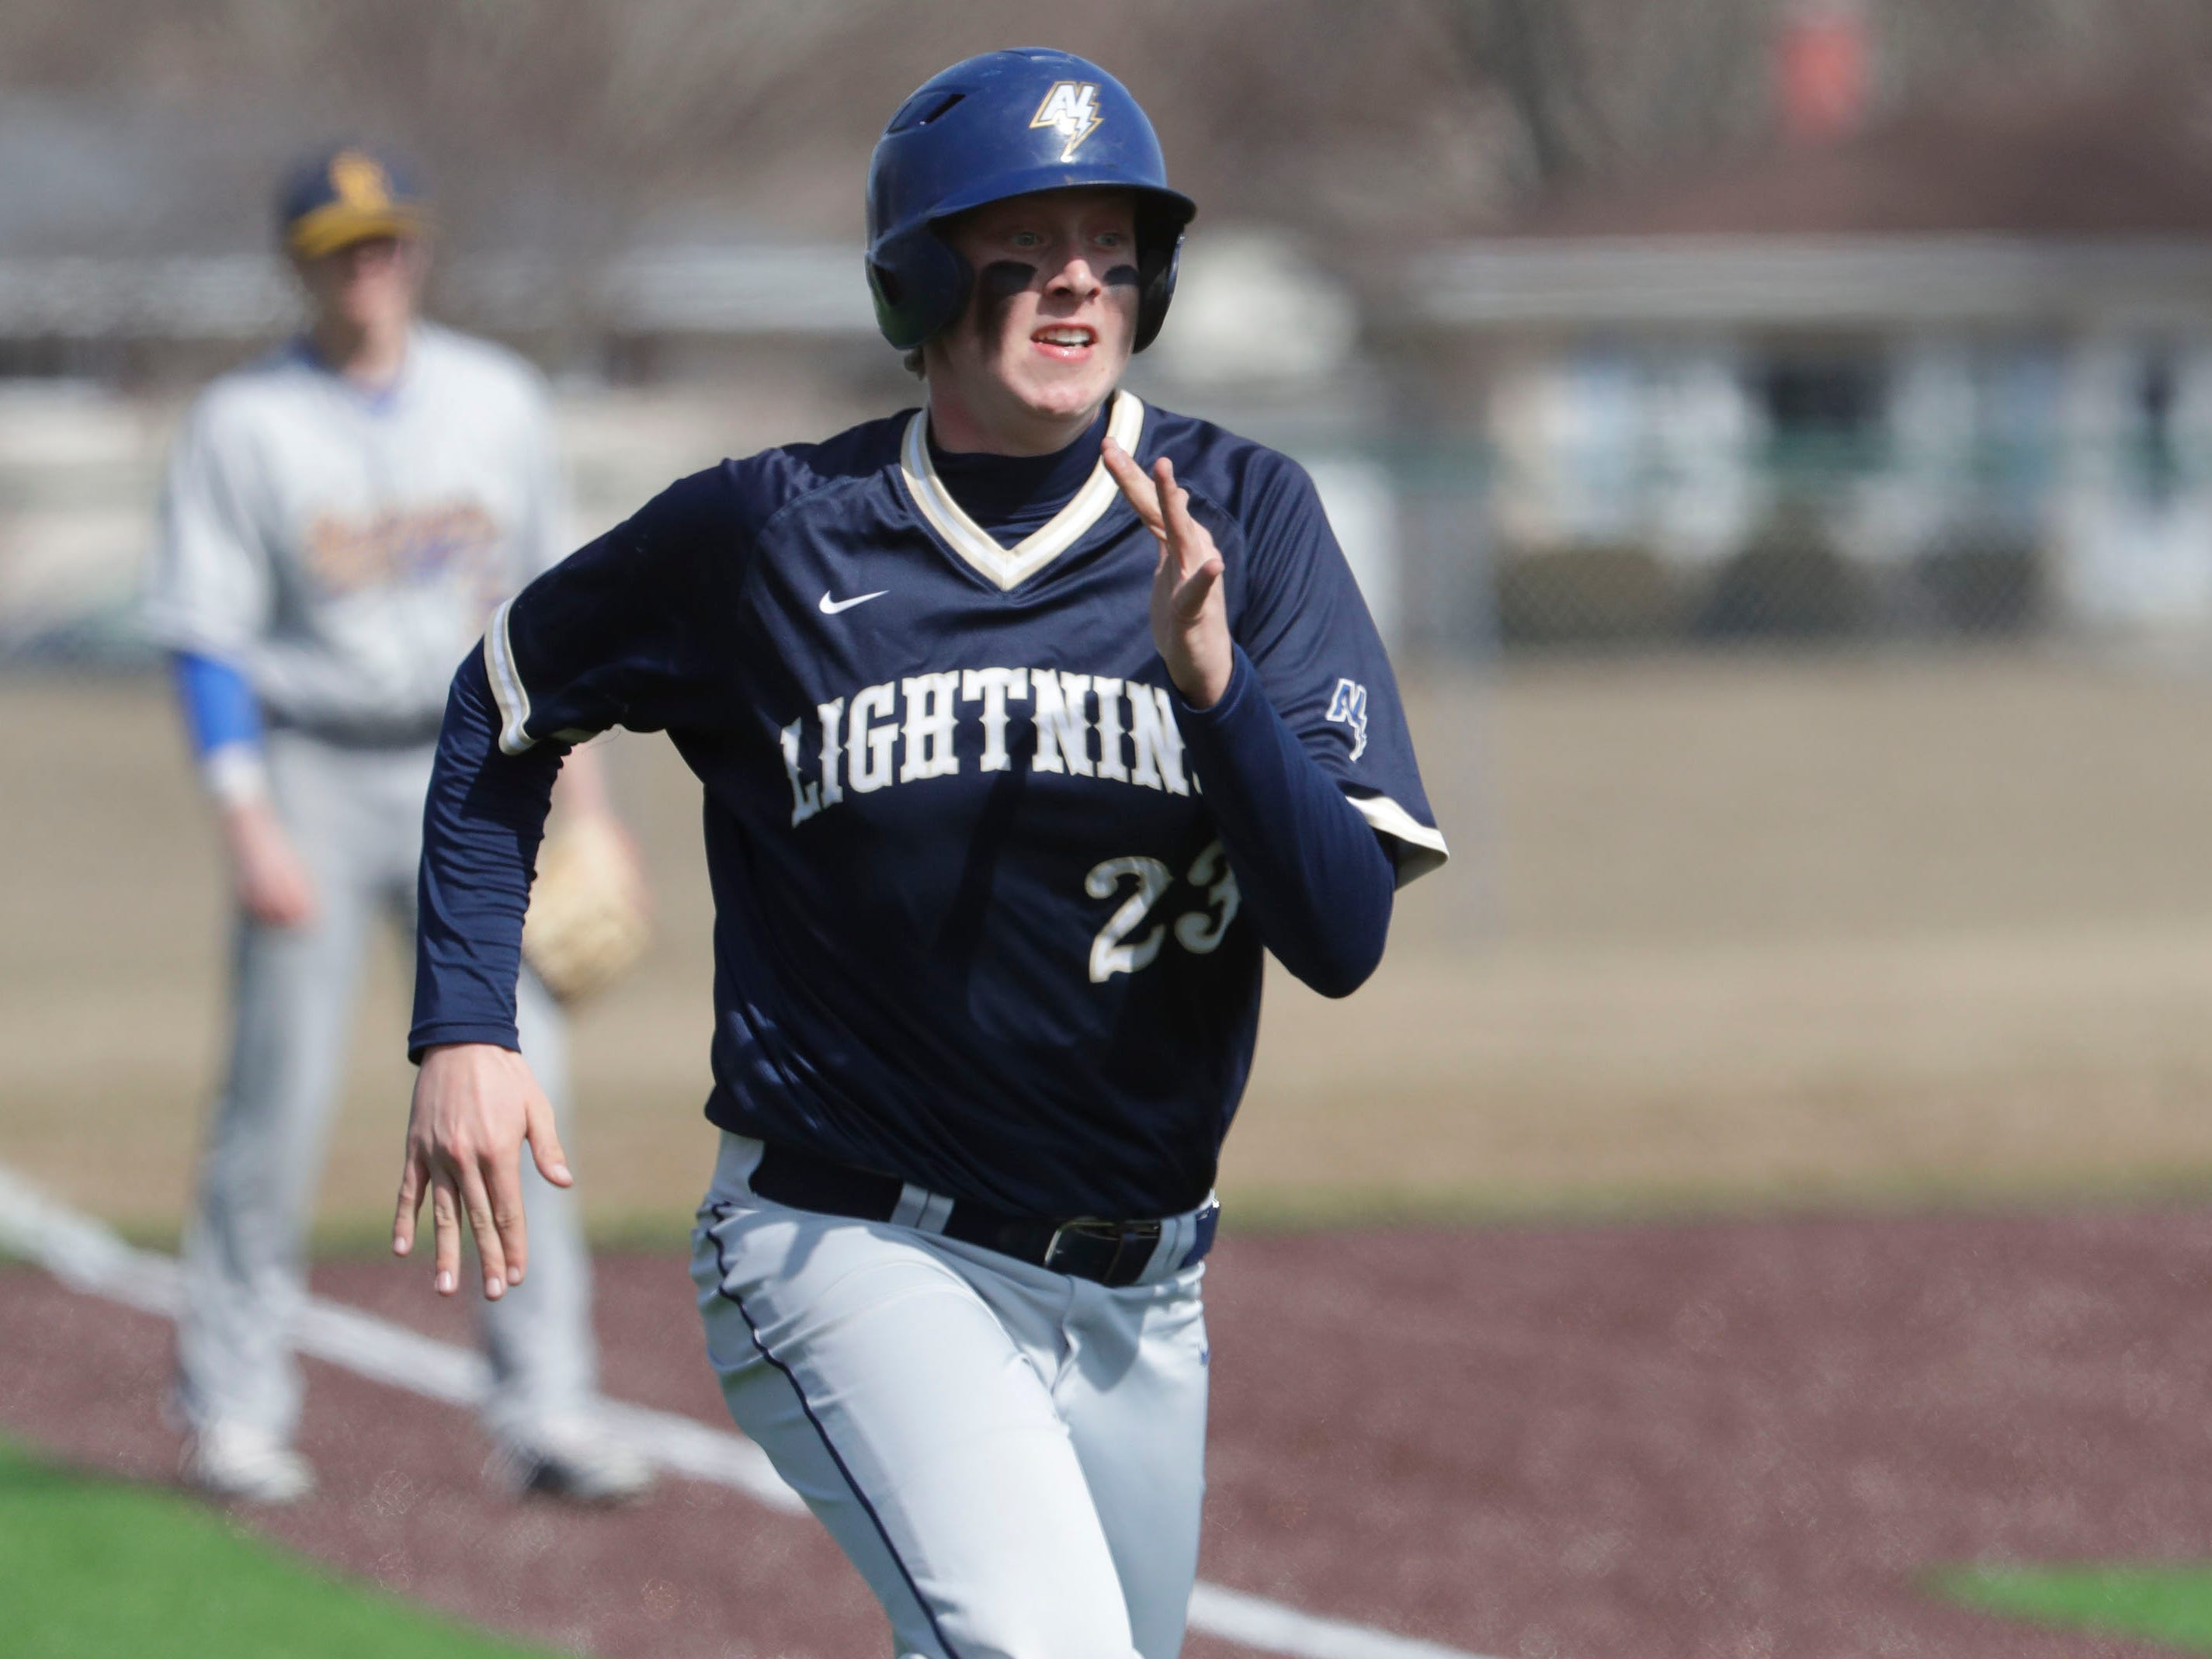 Appleton's Glavin Mathes (23) sprints to home against Sheboygan North, Friday, March 29, 2019, at the Field of Dreams complex in Sheboygan, Wis.